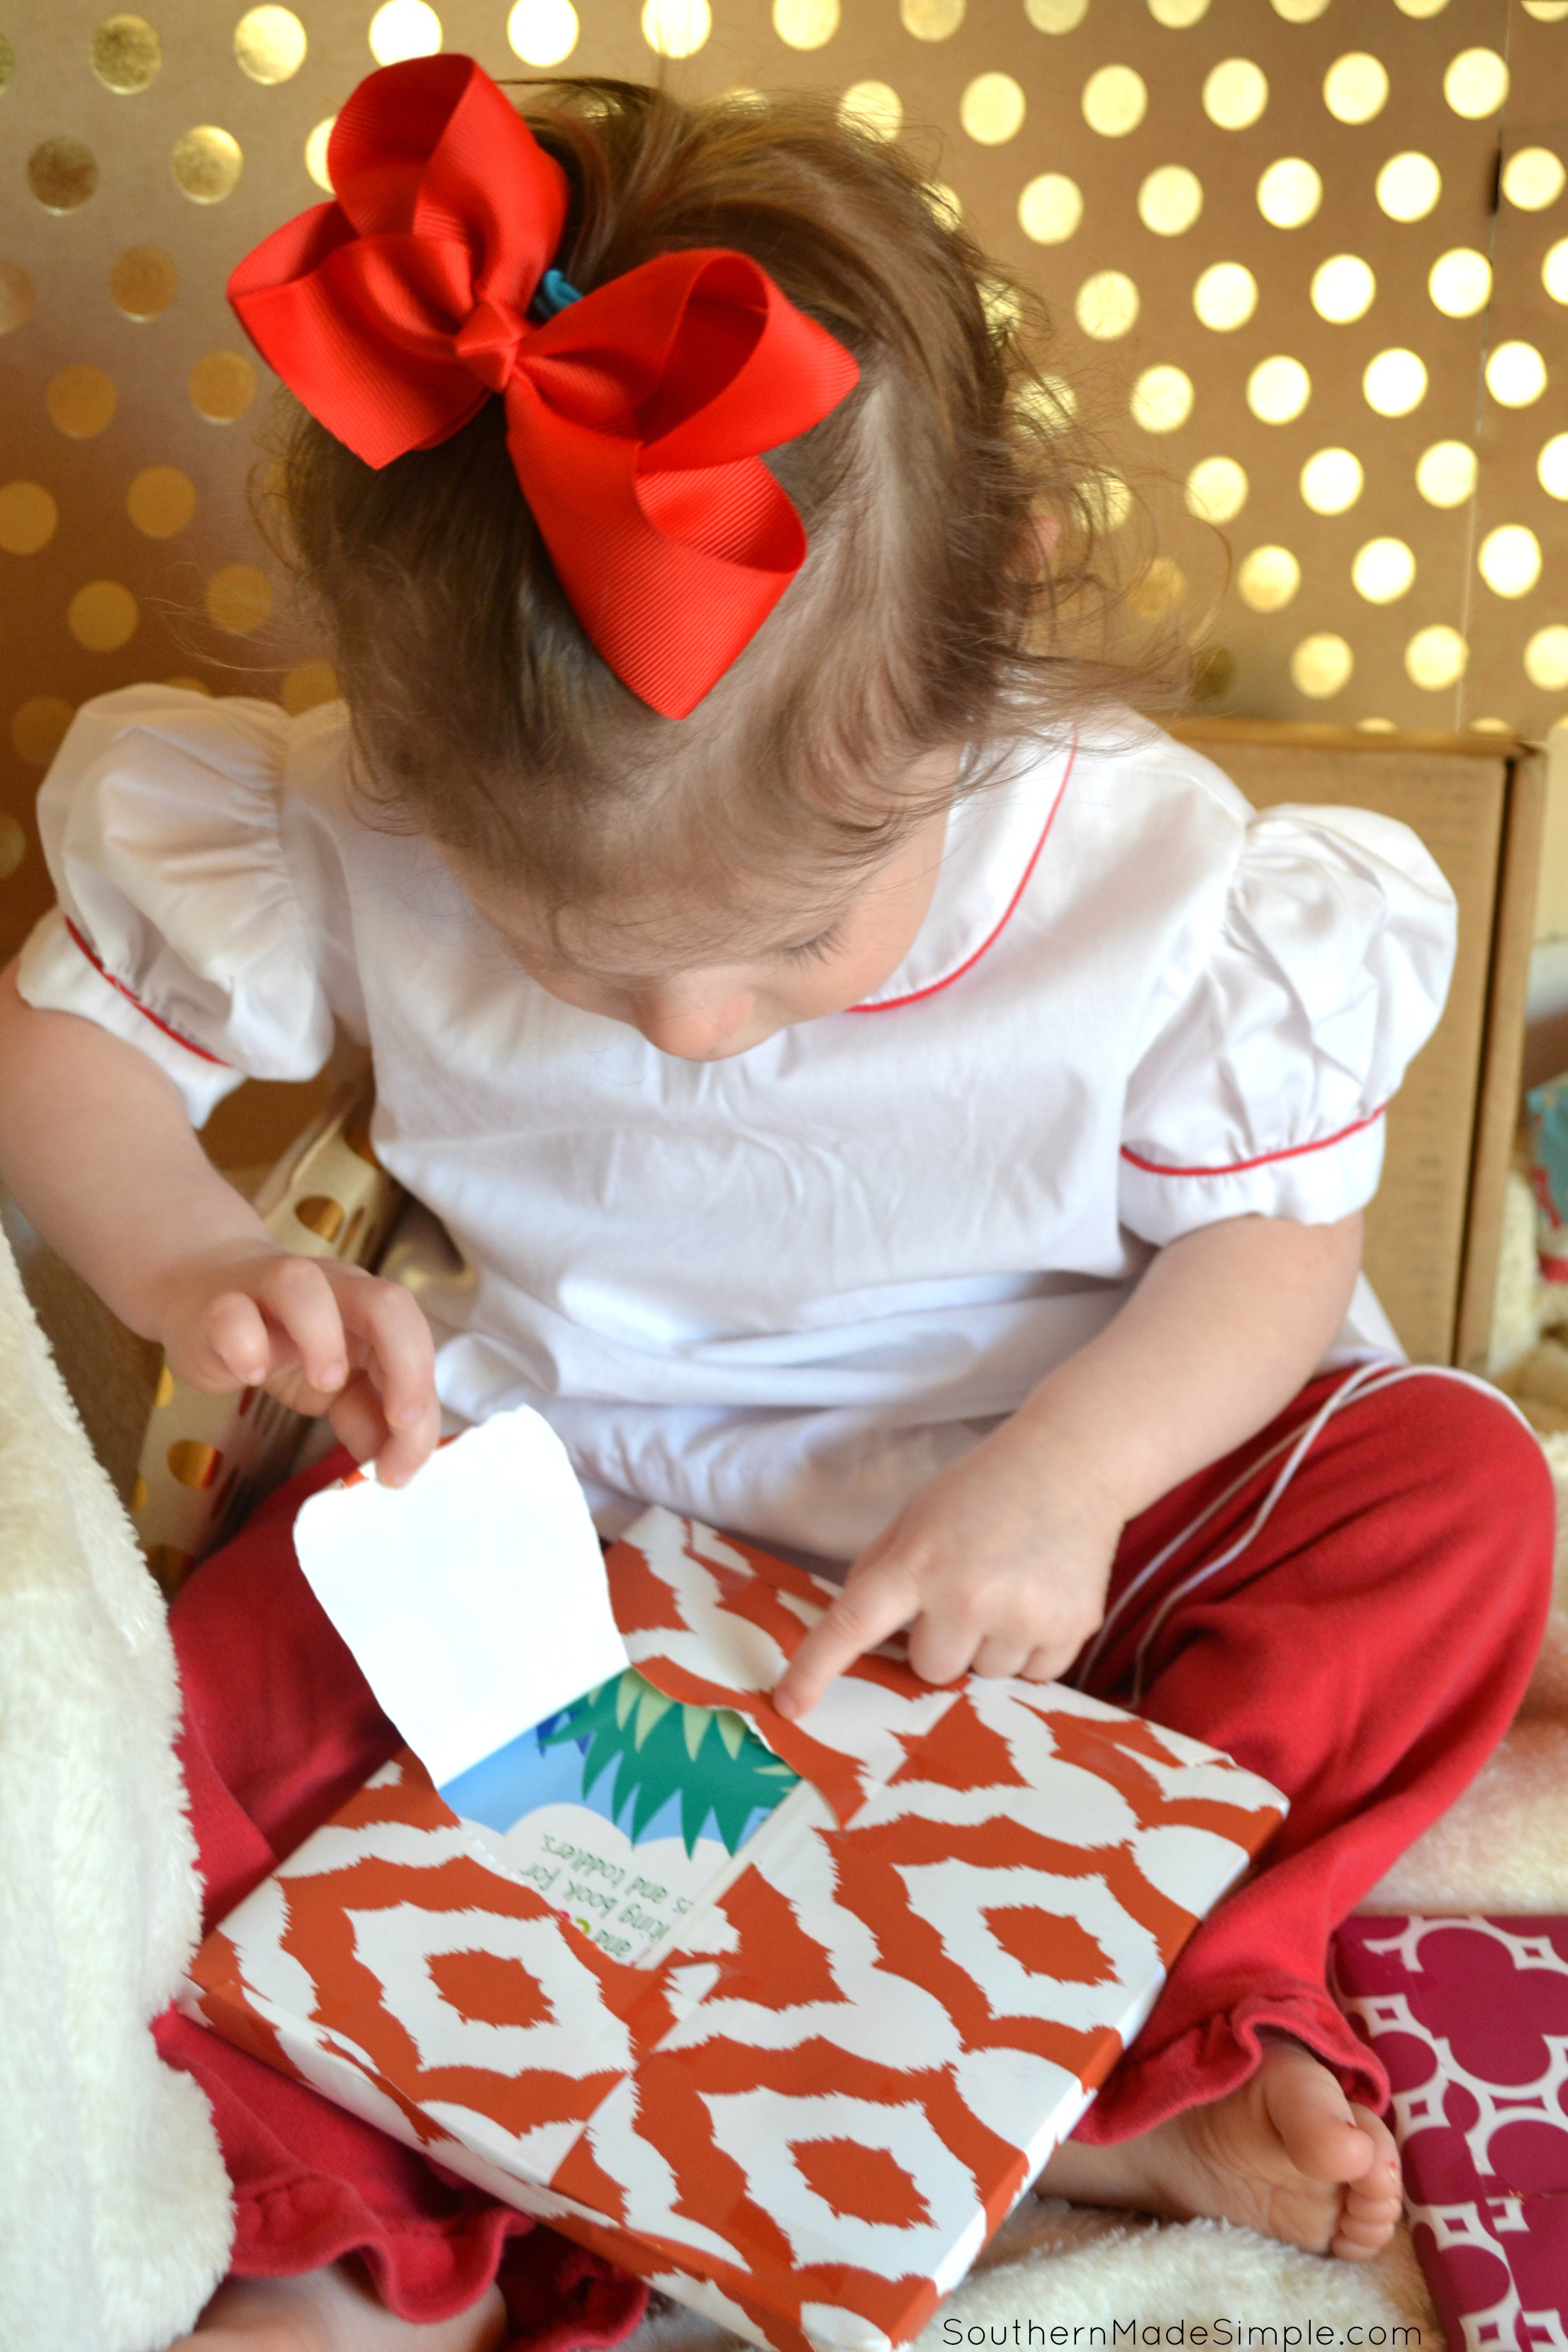 Bookroo Kids Book Subscription Box Review